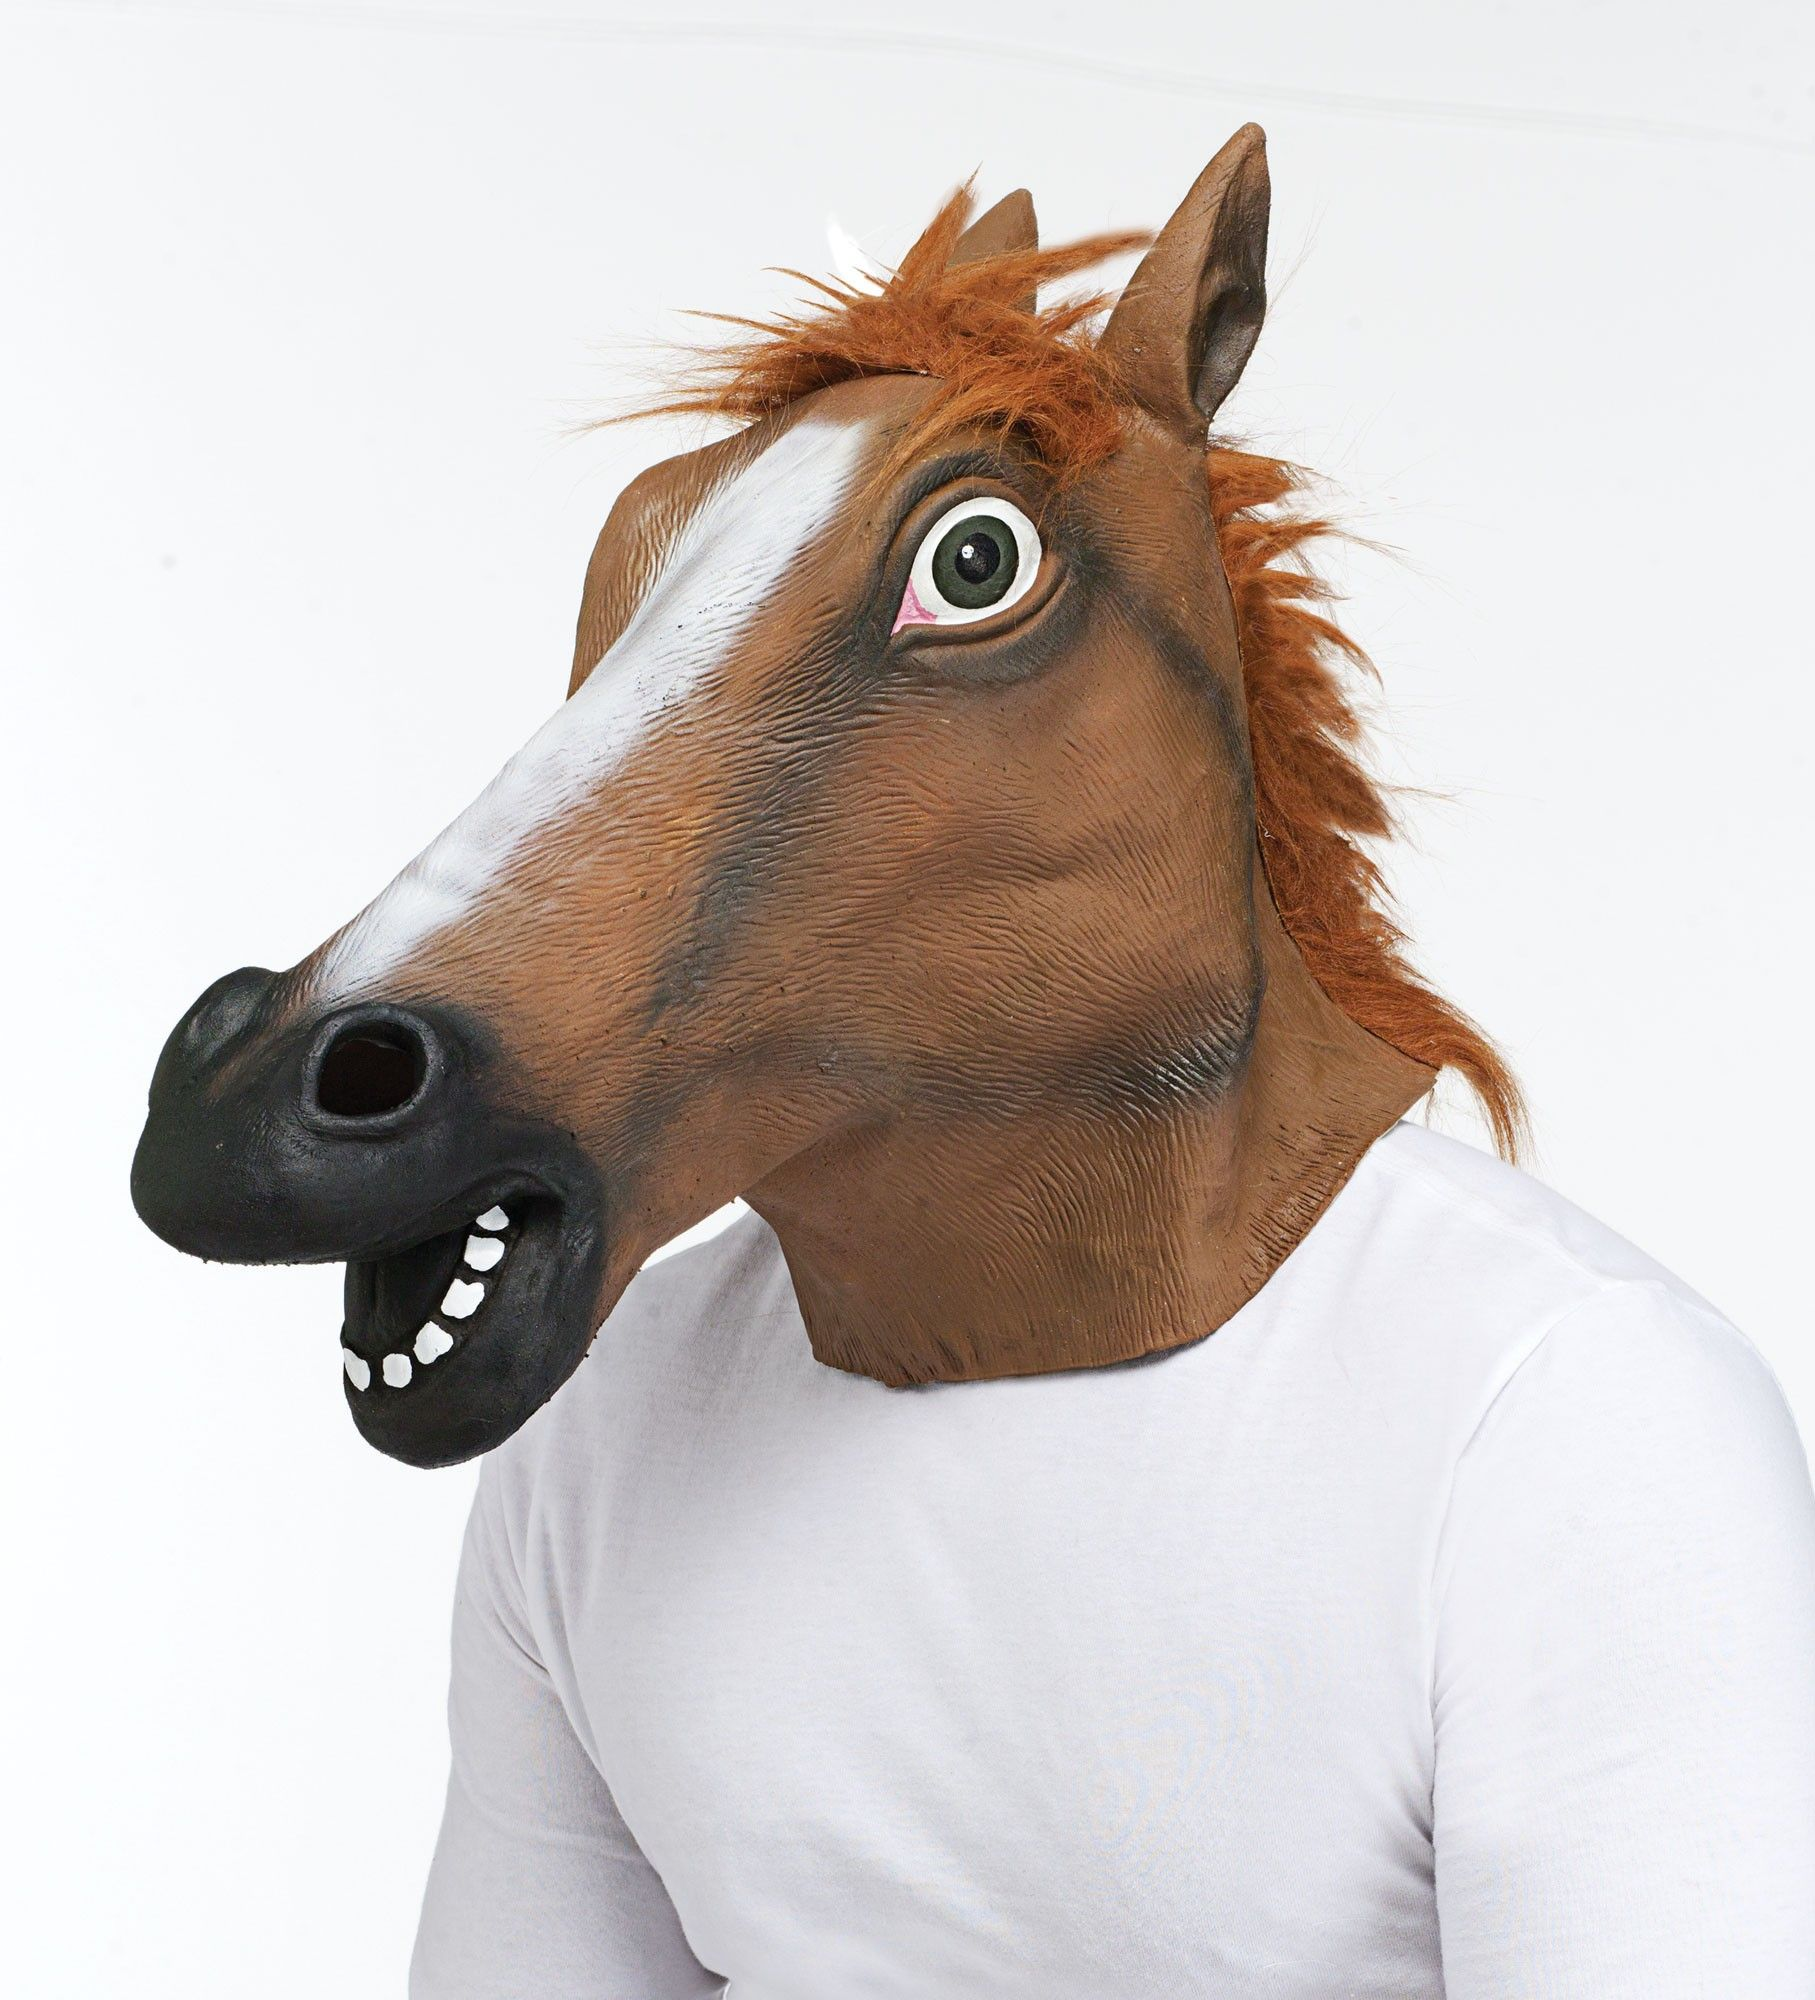 Horse Head Mask | HORSE HEAD MASK | Pinterest | Horse head, Masks ...